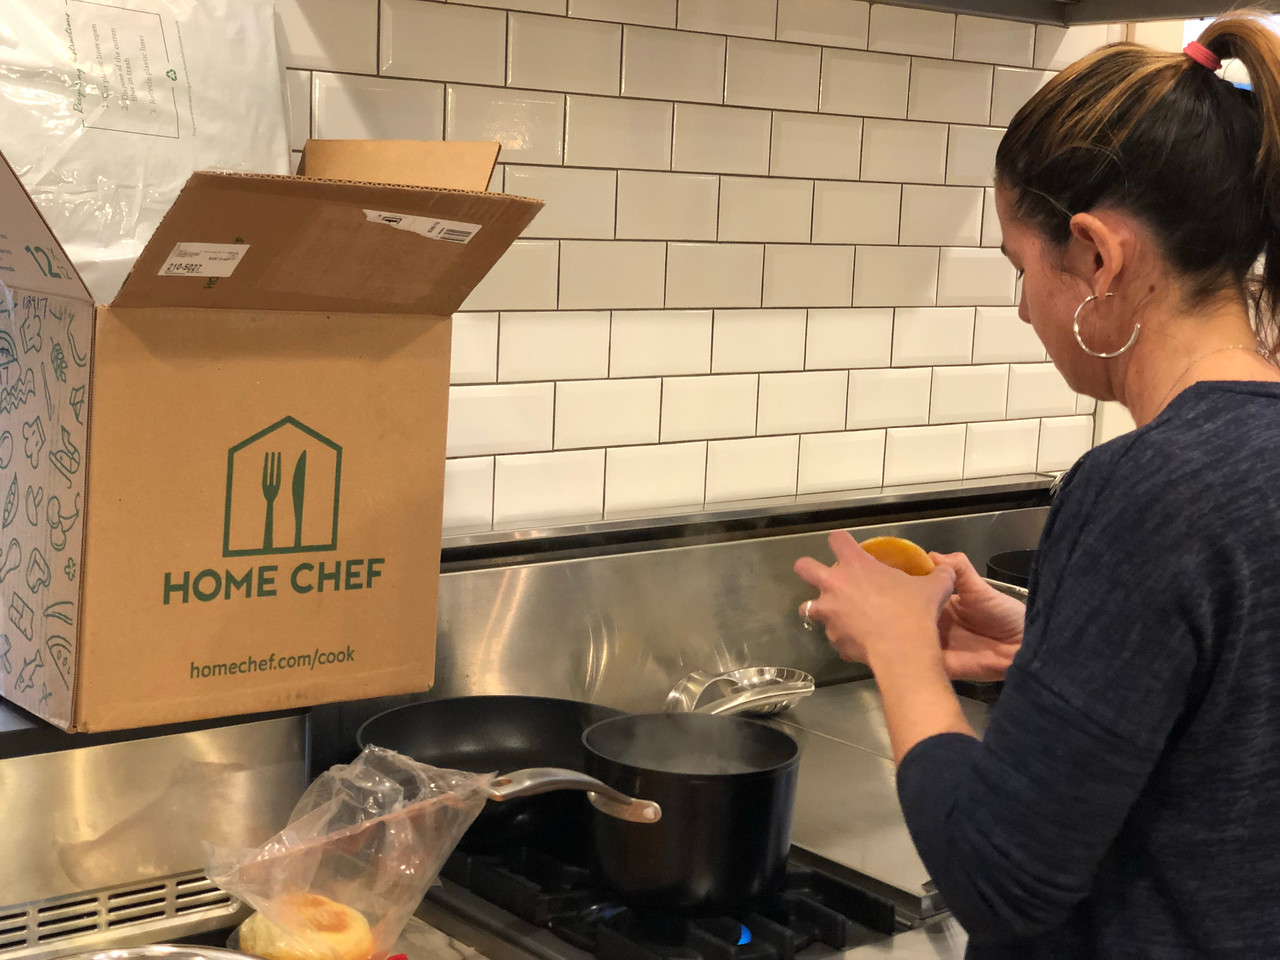 home chef meal deal – summer recipes – Bryn preparing a Home Chef meal